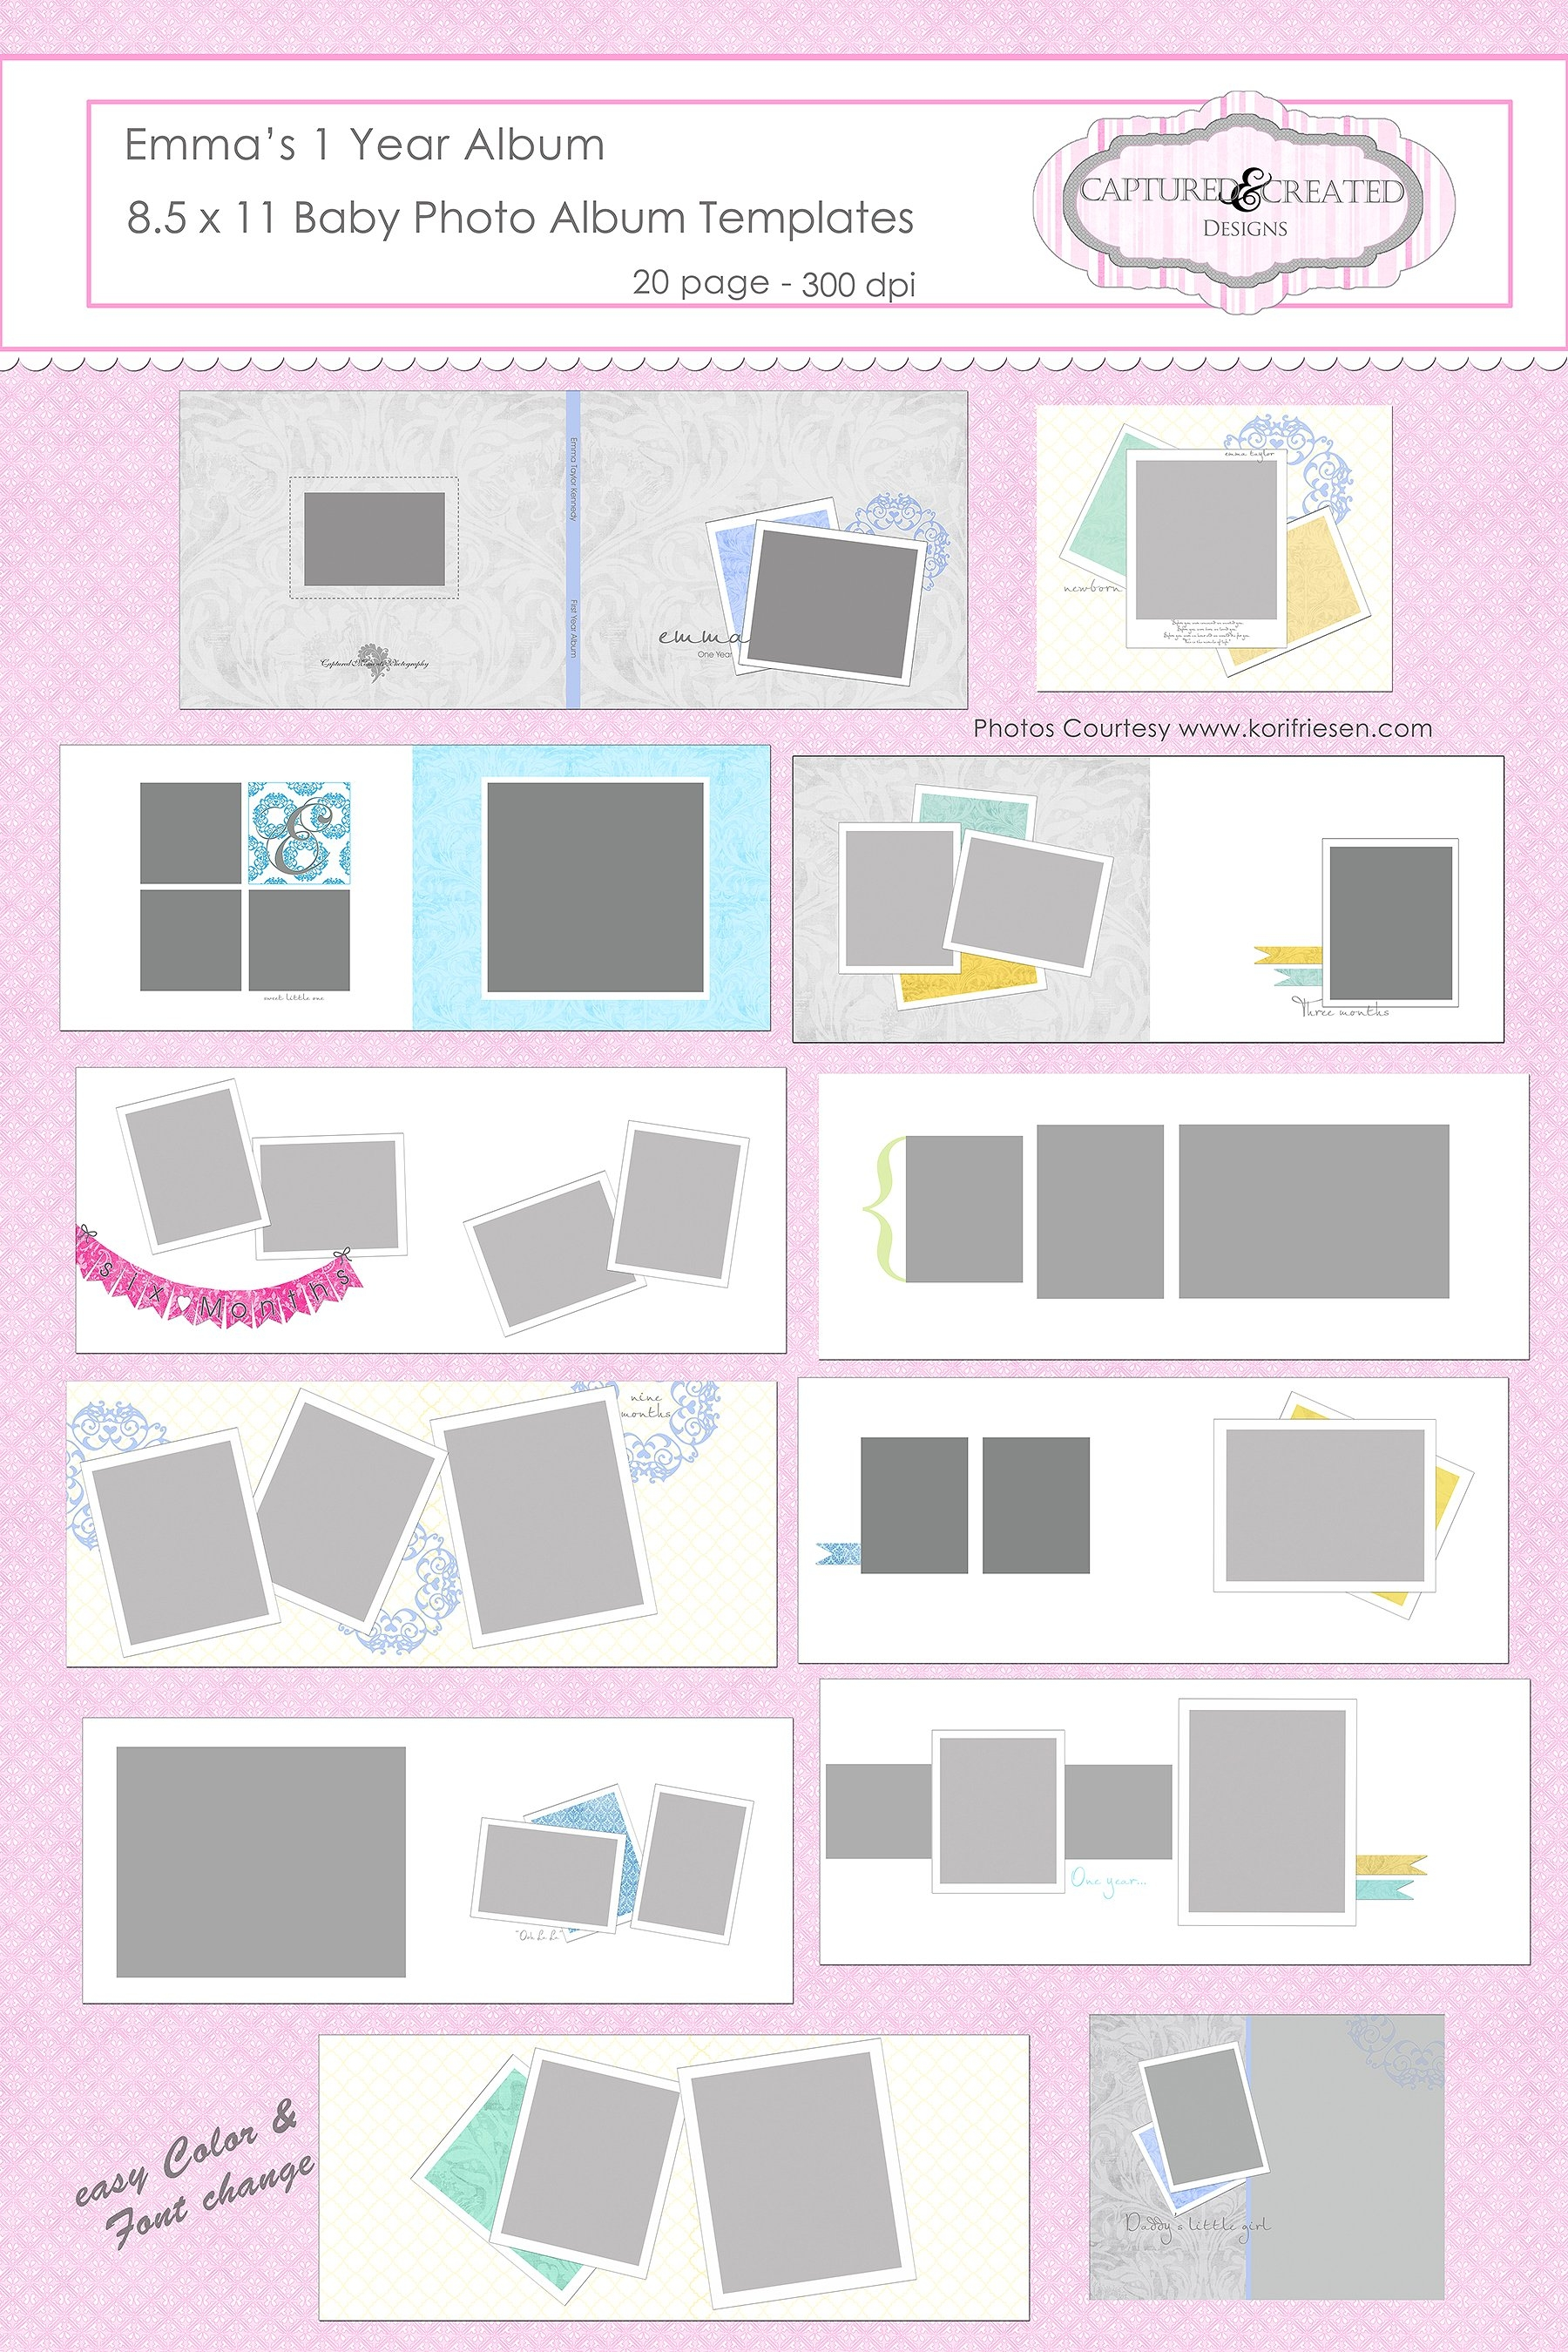 One Year Baby Album Template_1